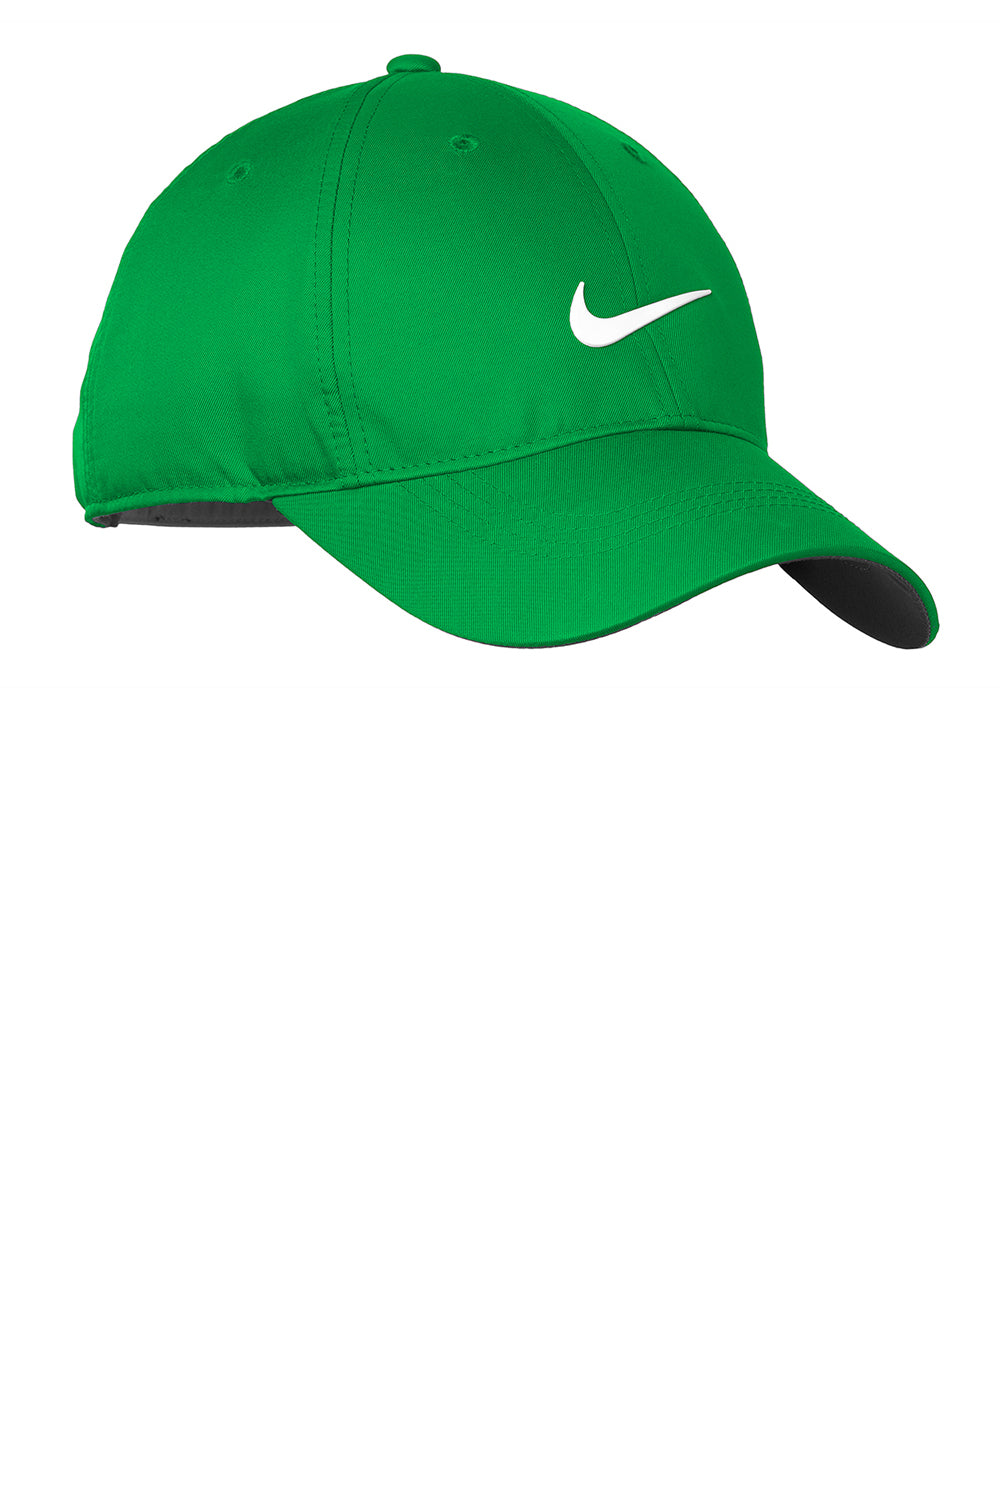 Nike 548533 Mens Dri-Fit Moisture Wicking Adjustable Hat Kelly Green Front